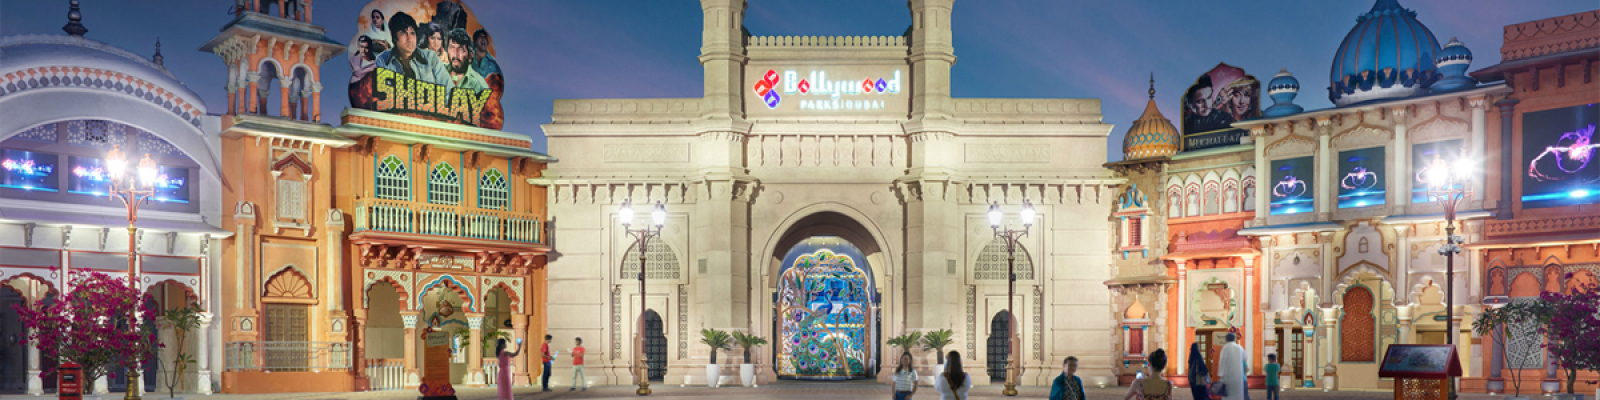 bollywood park dubai ticket price, bollywood park dubai tickets offer, bollywood park dubai offers